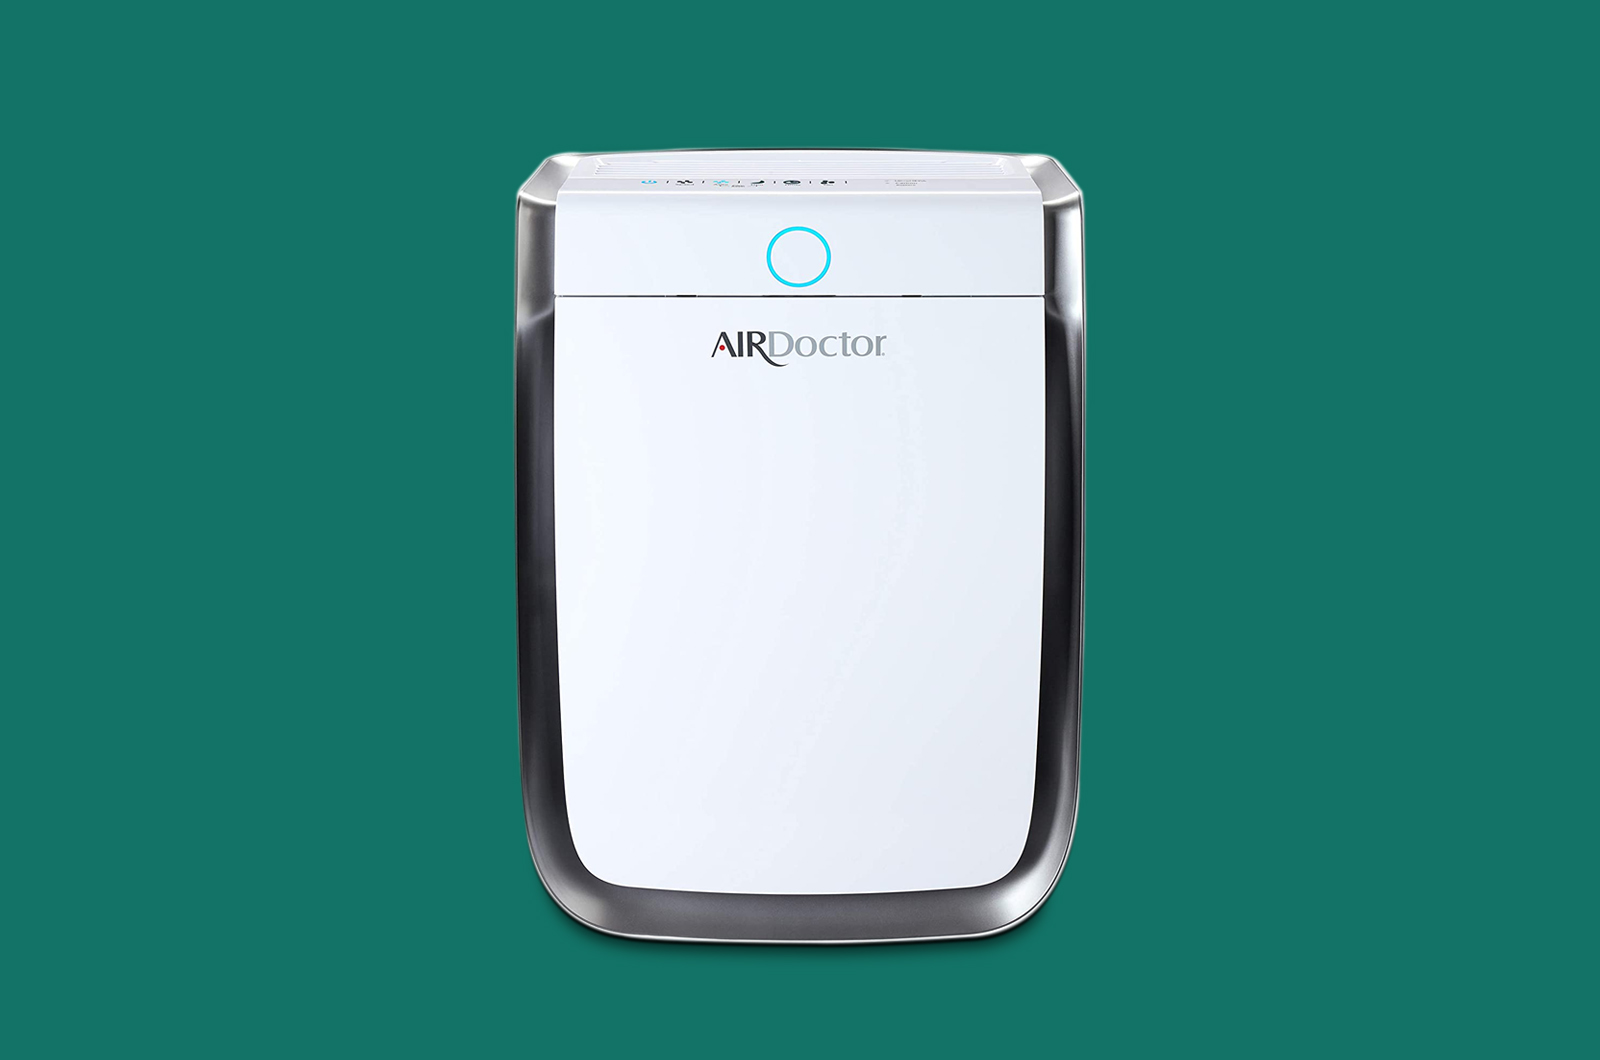 Best Air Purifiers For 2020 Updated September 2020 Money,Lilly Pulitzer And Starbucks